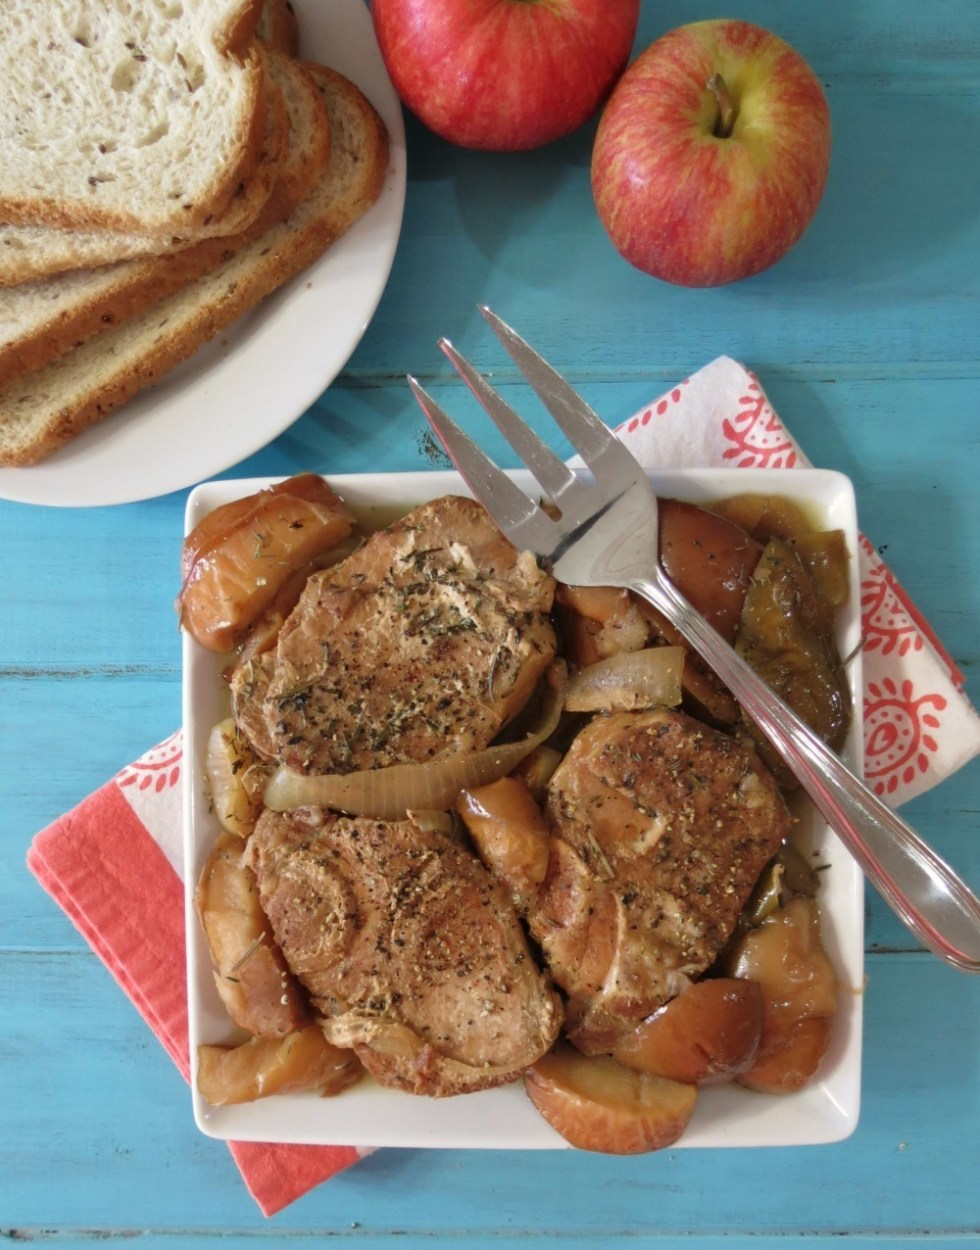 Apples and Pork Loin in the Crockpot